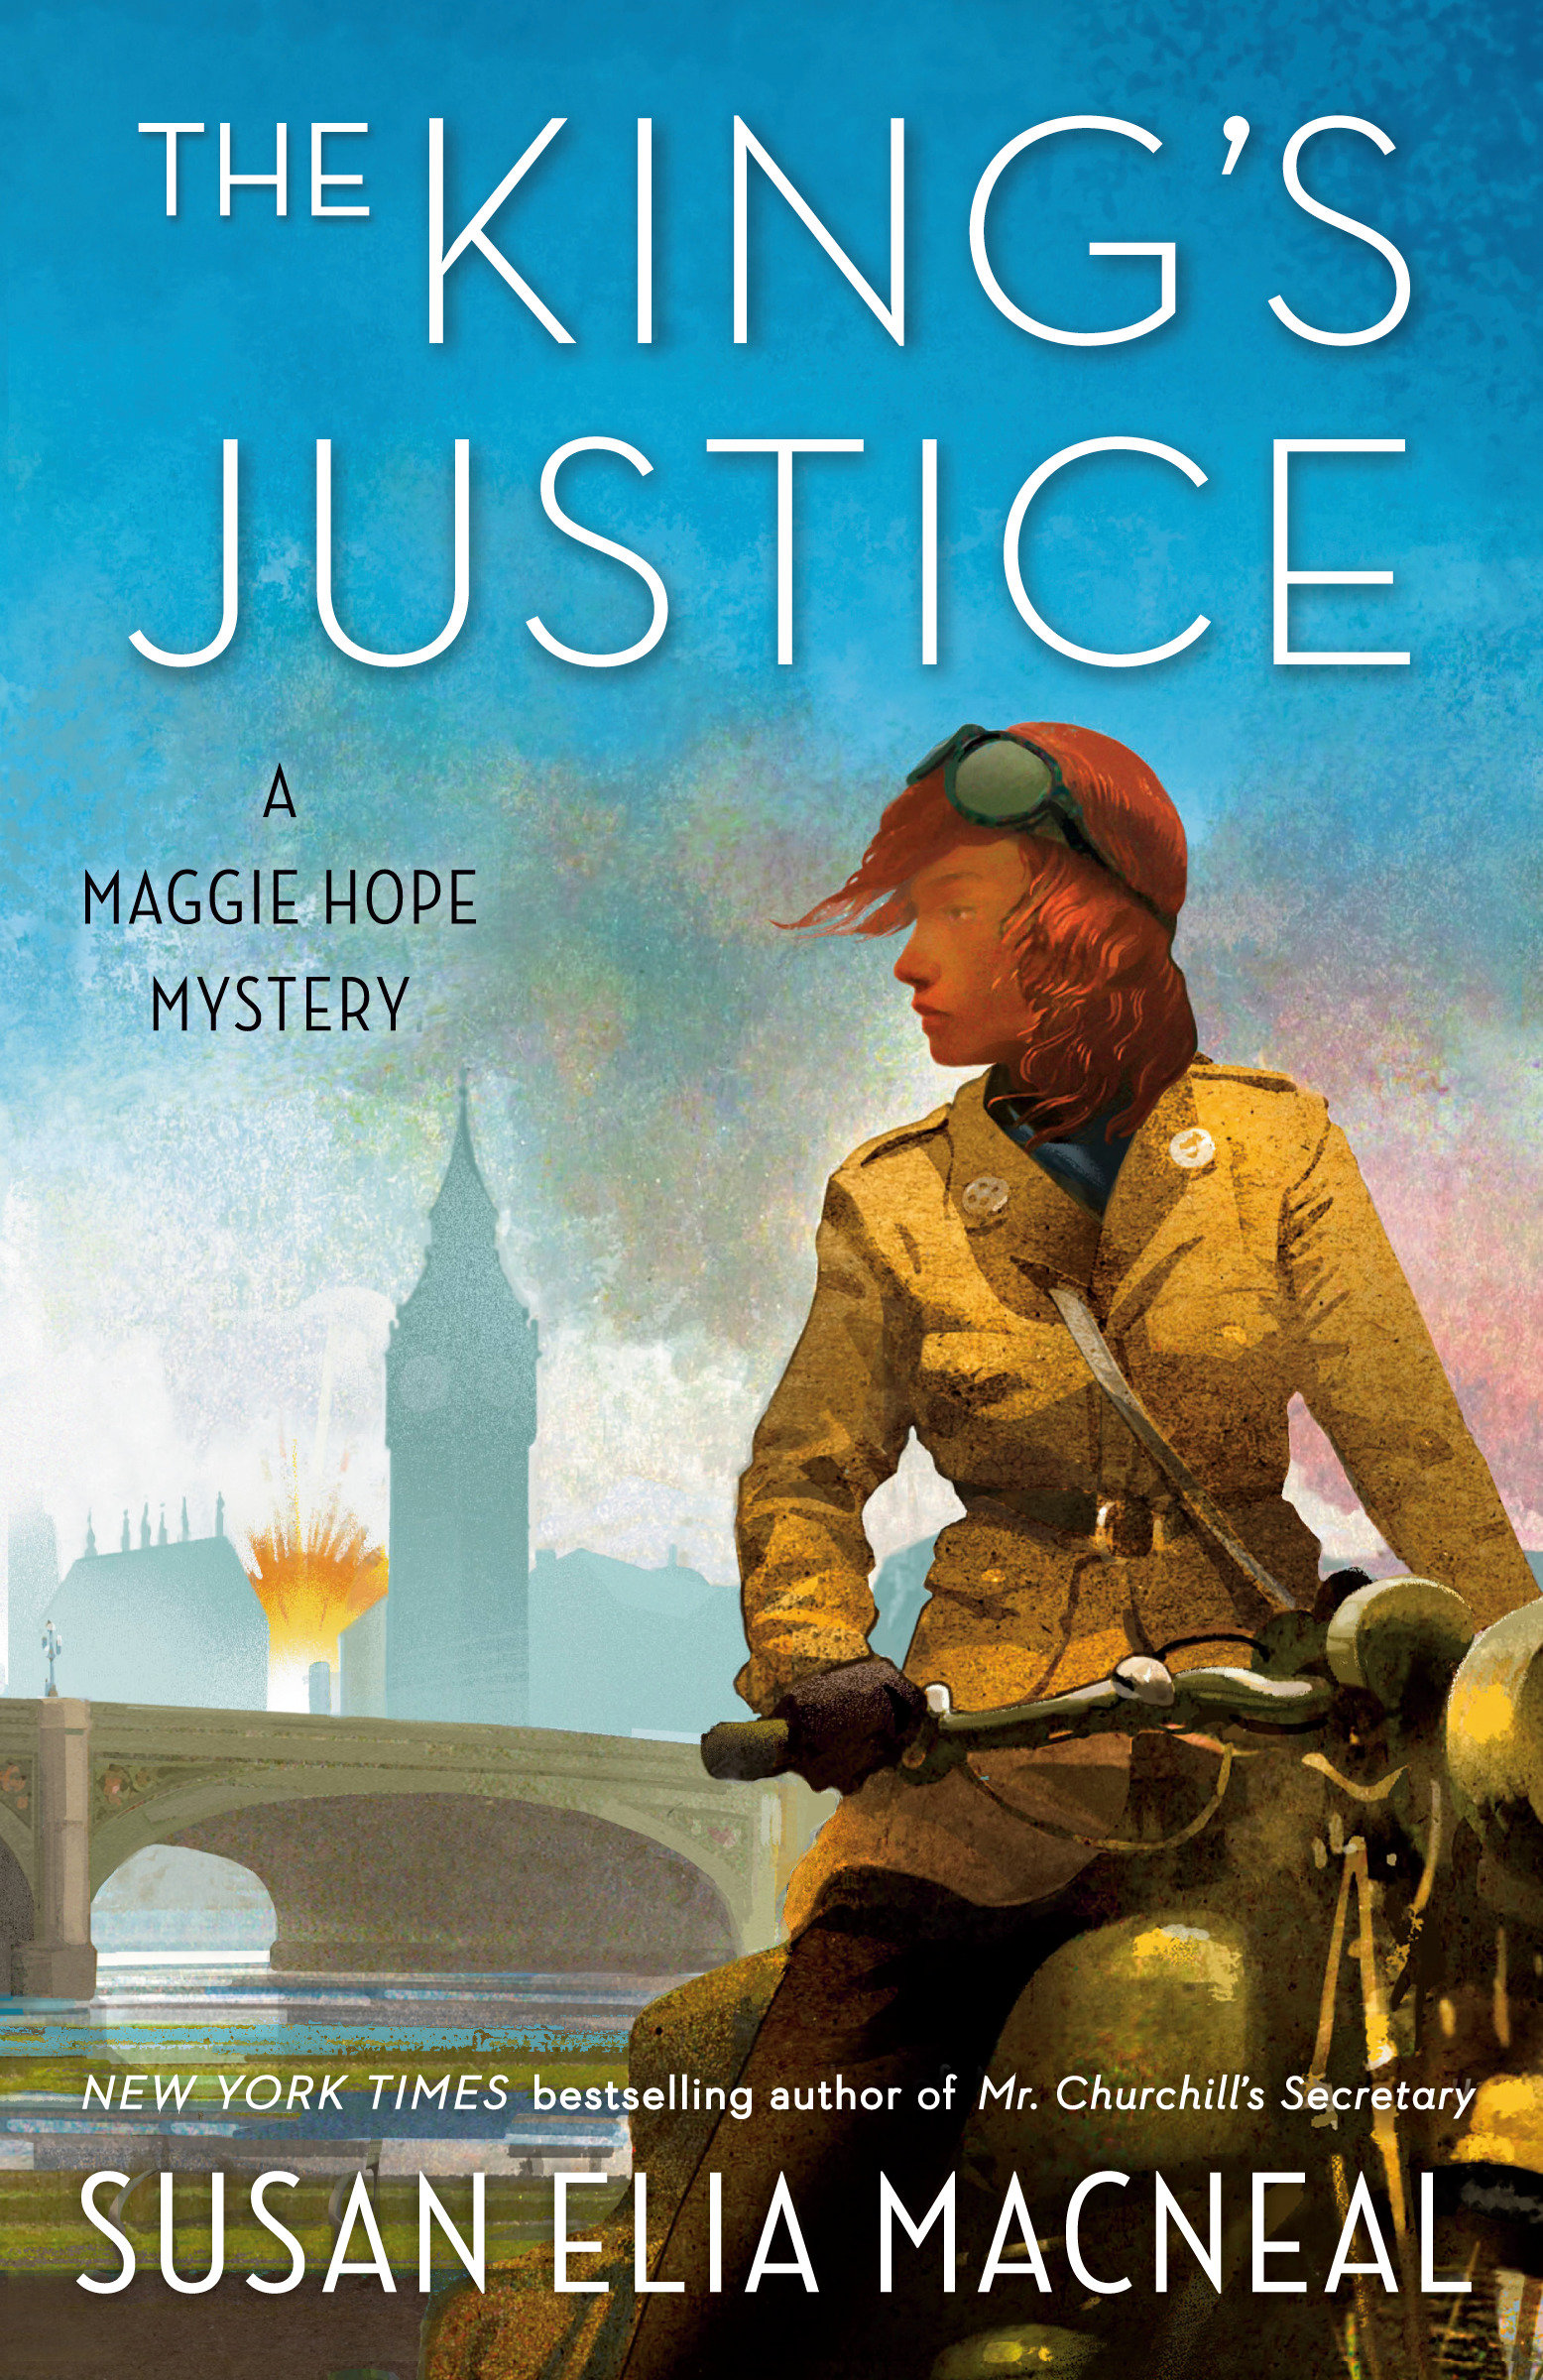 The King's Justice A Maggie Hope Mystery